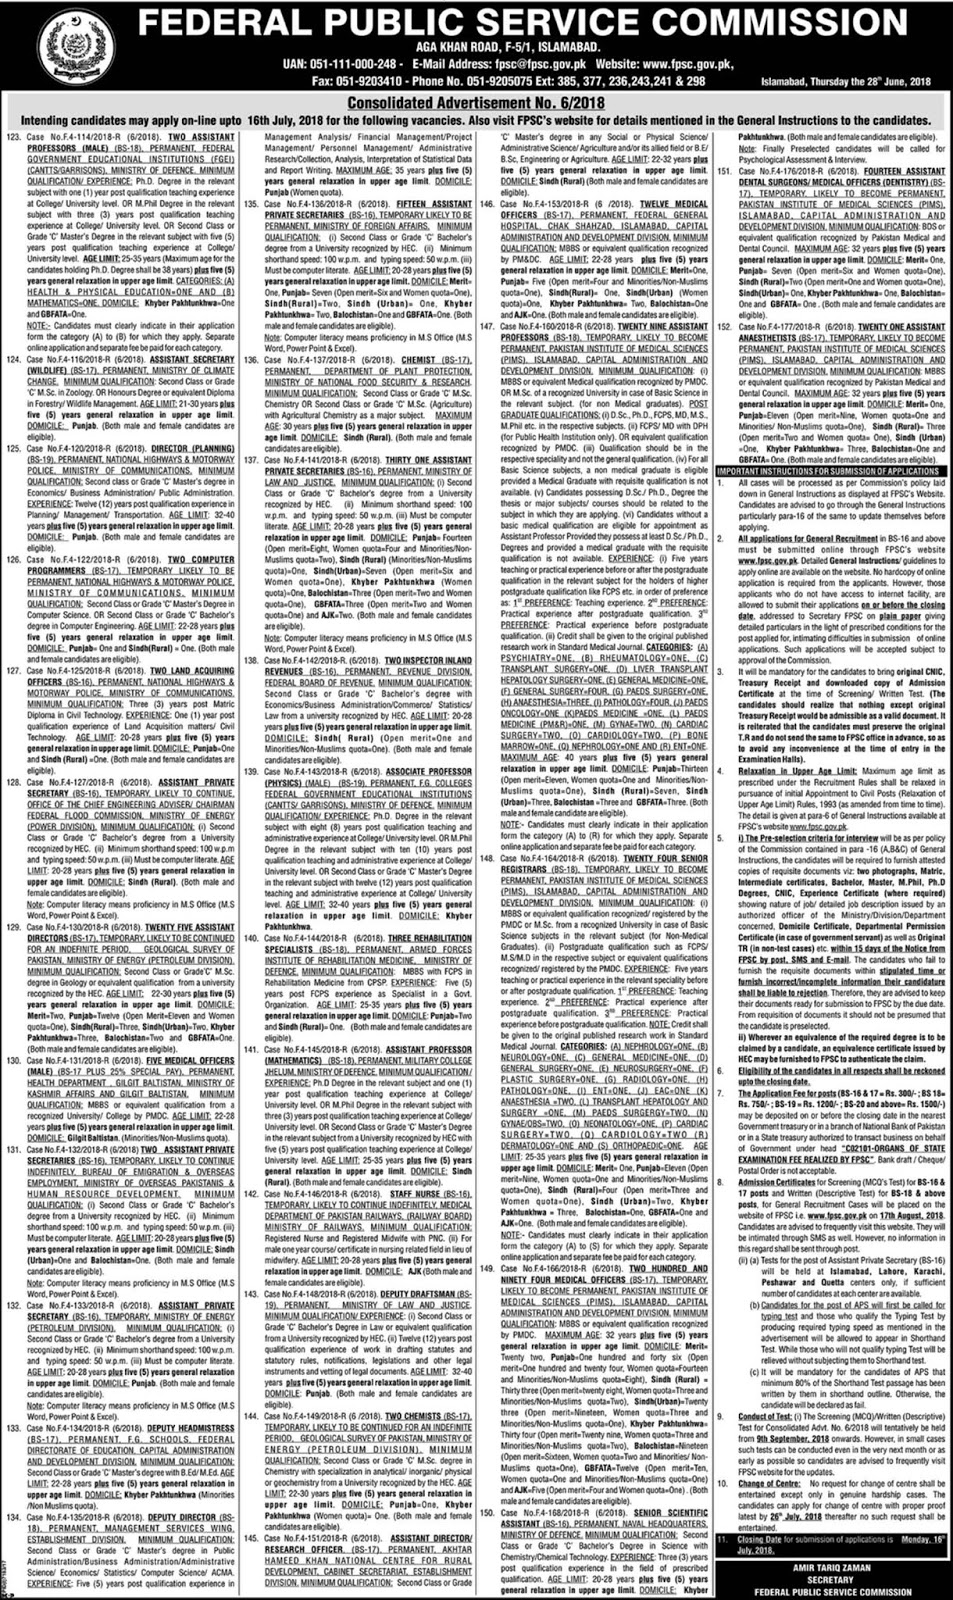 FPSC Jobs Consolidated Advertisement No. 06/2018, July 2018